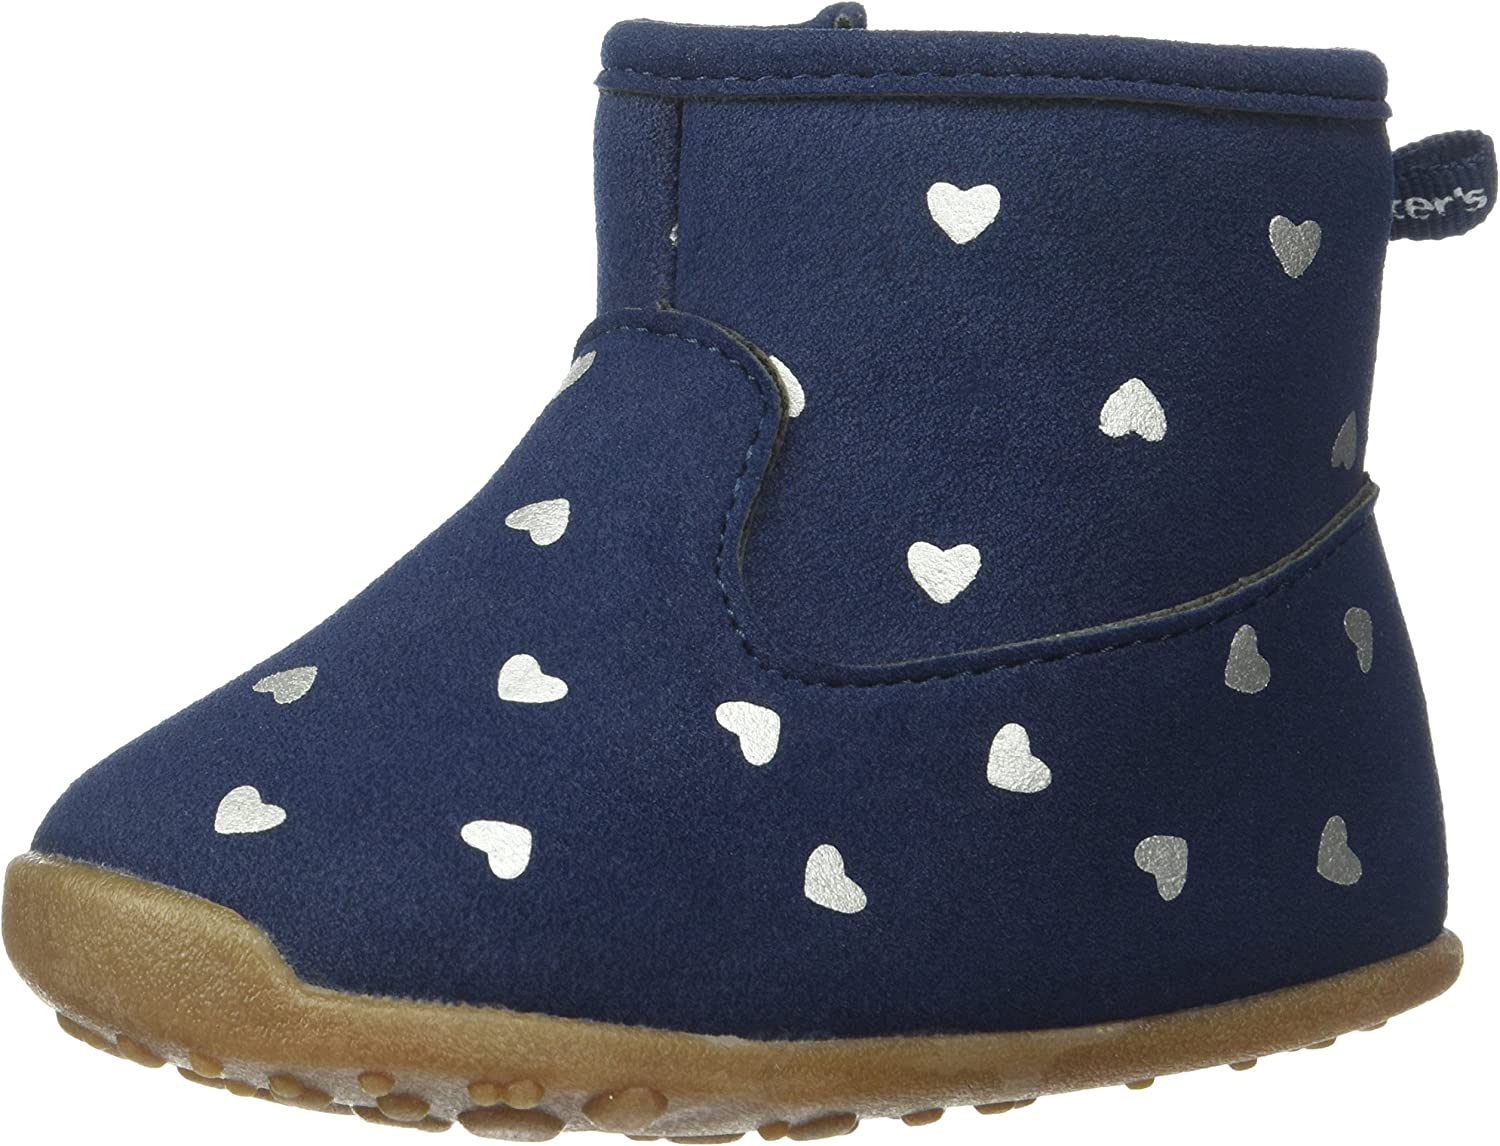 Carters Every Step girls infant 1st walker Amira fashion boot